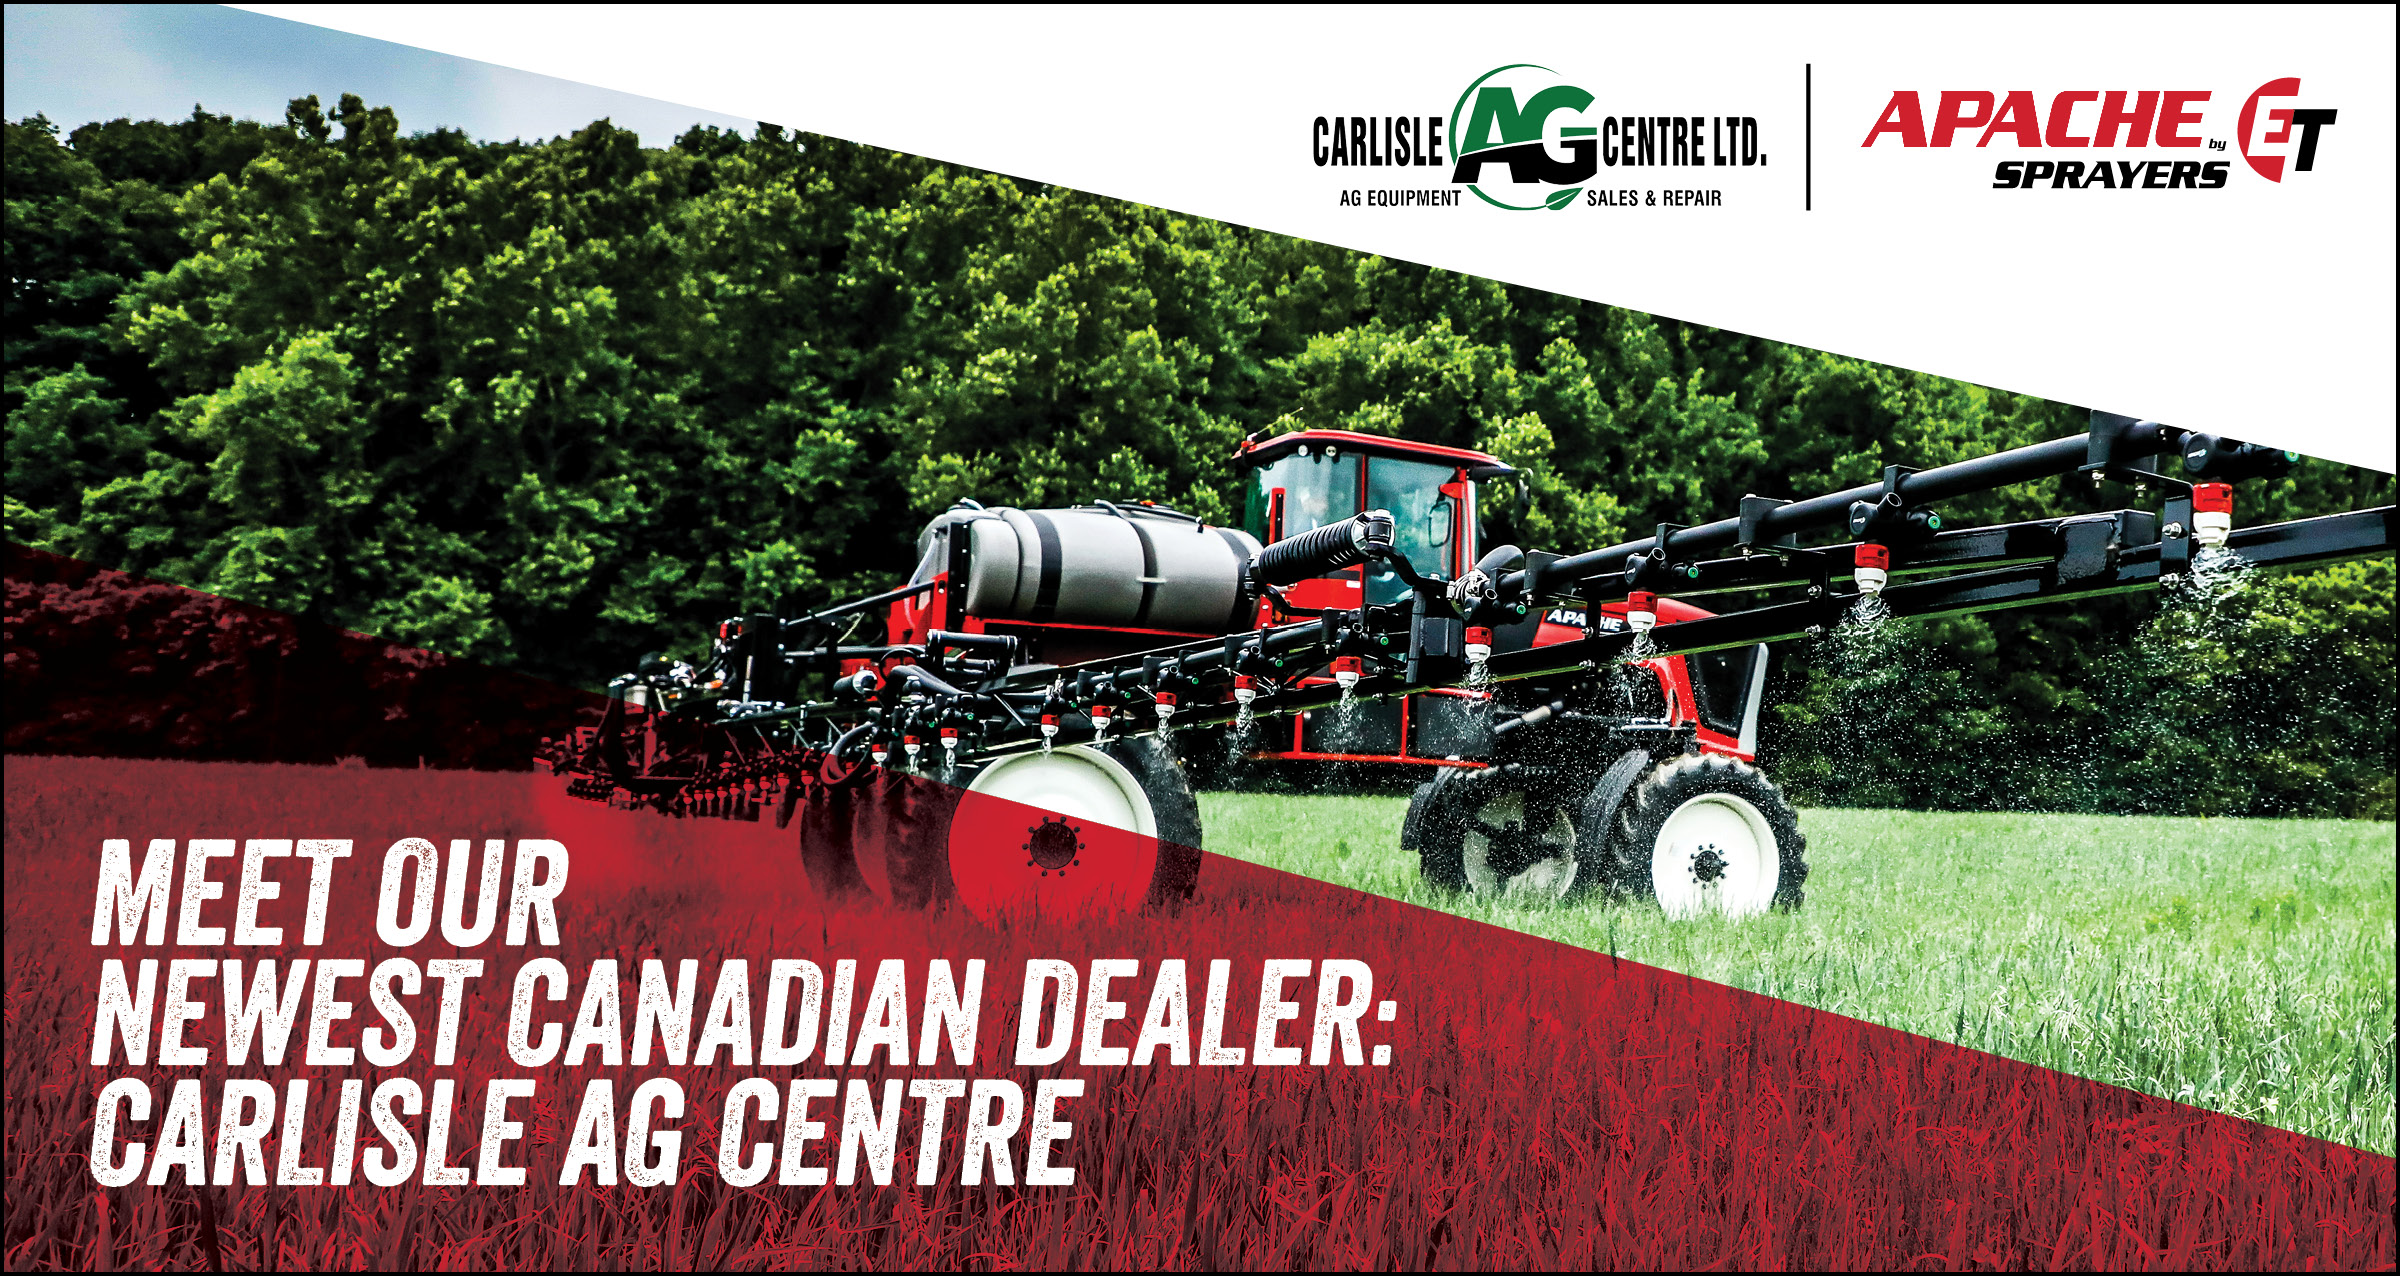 New Apache Dealer - Carlisle Ag Centre